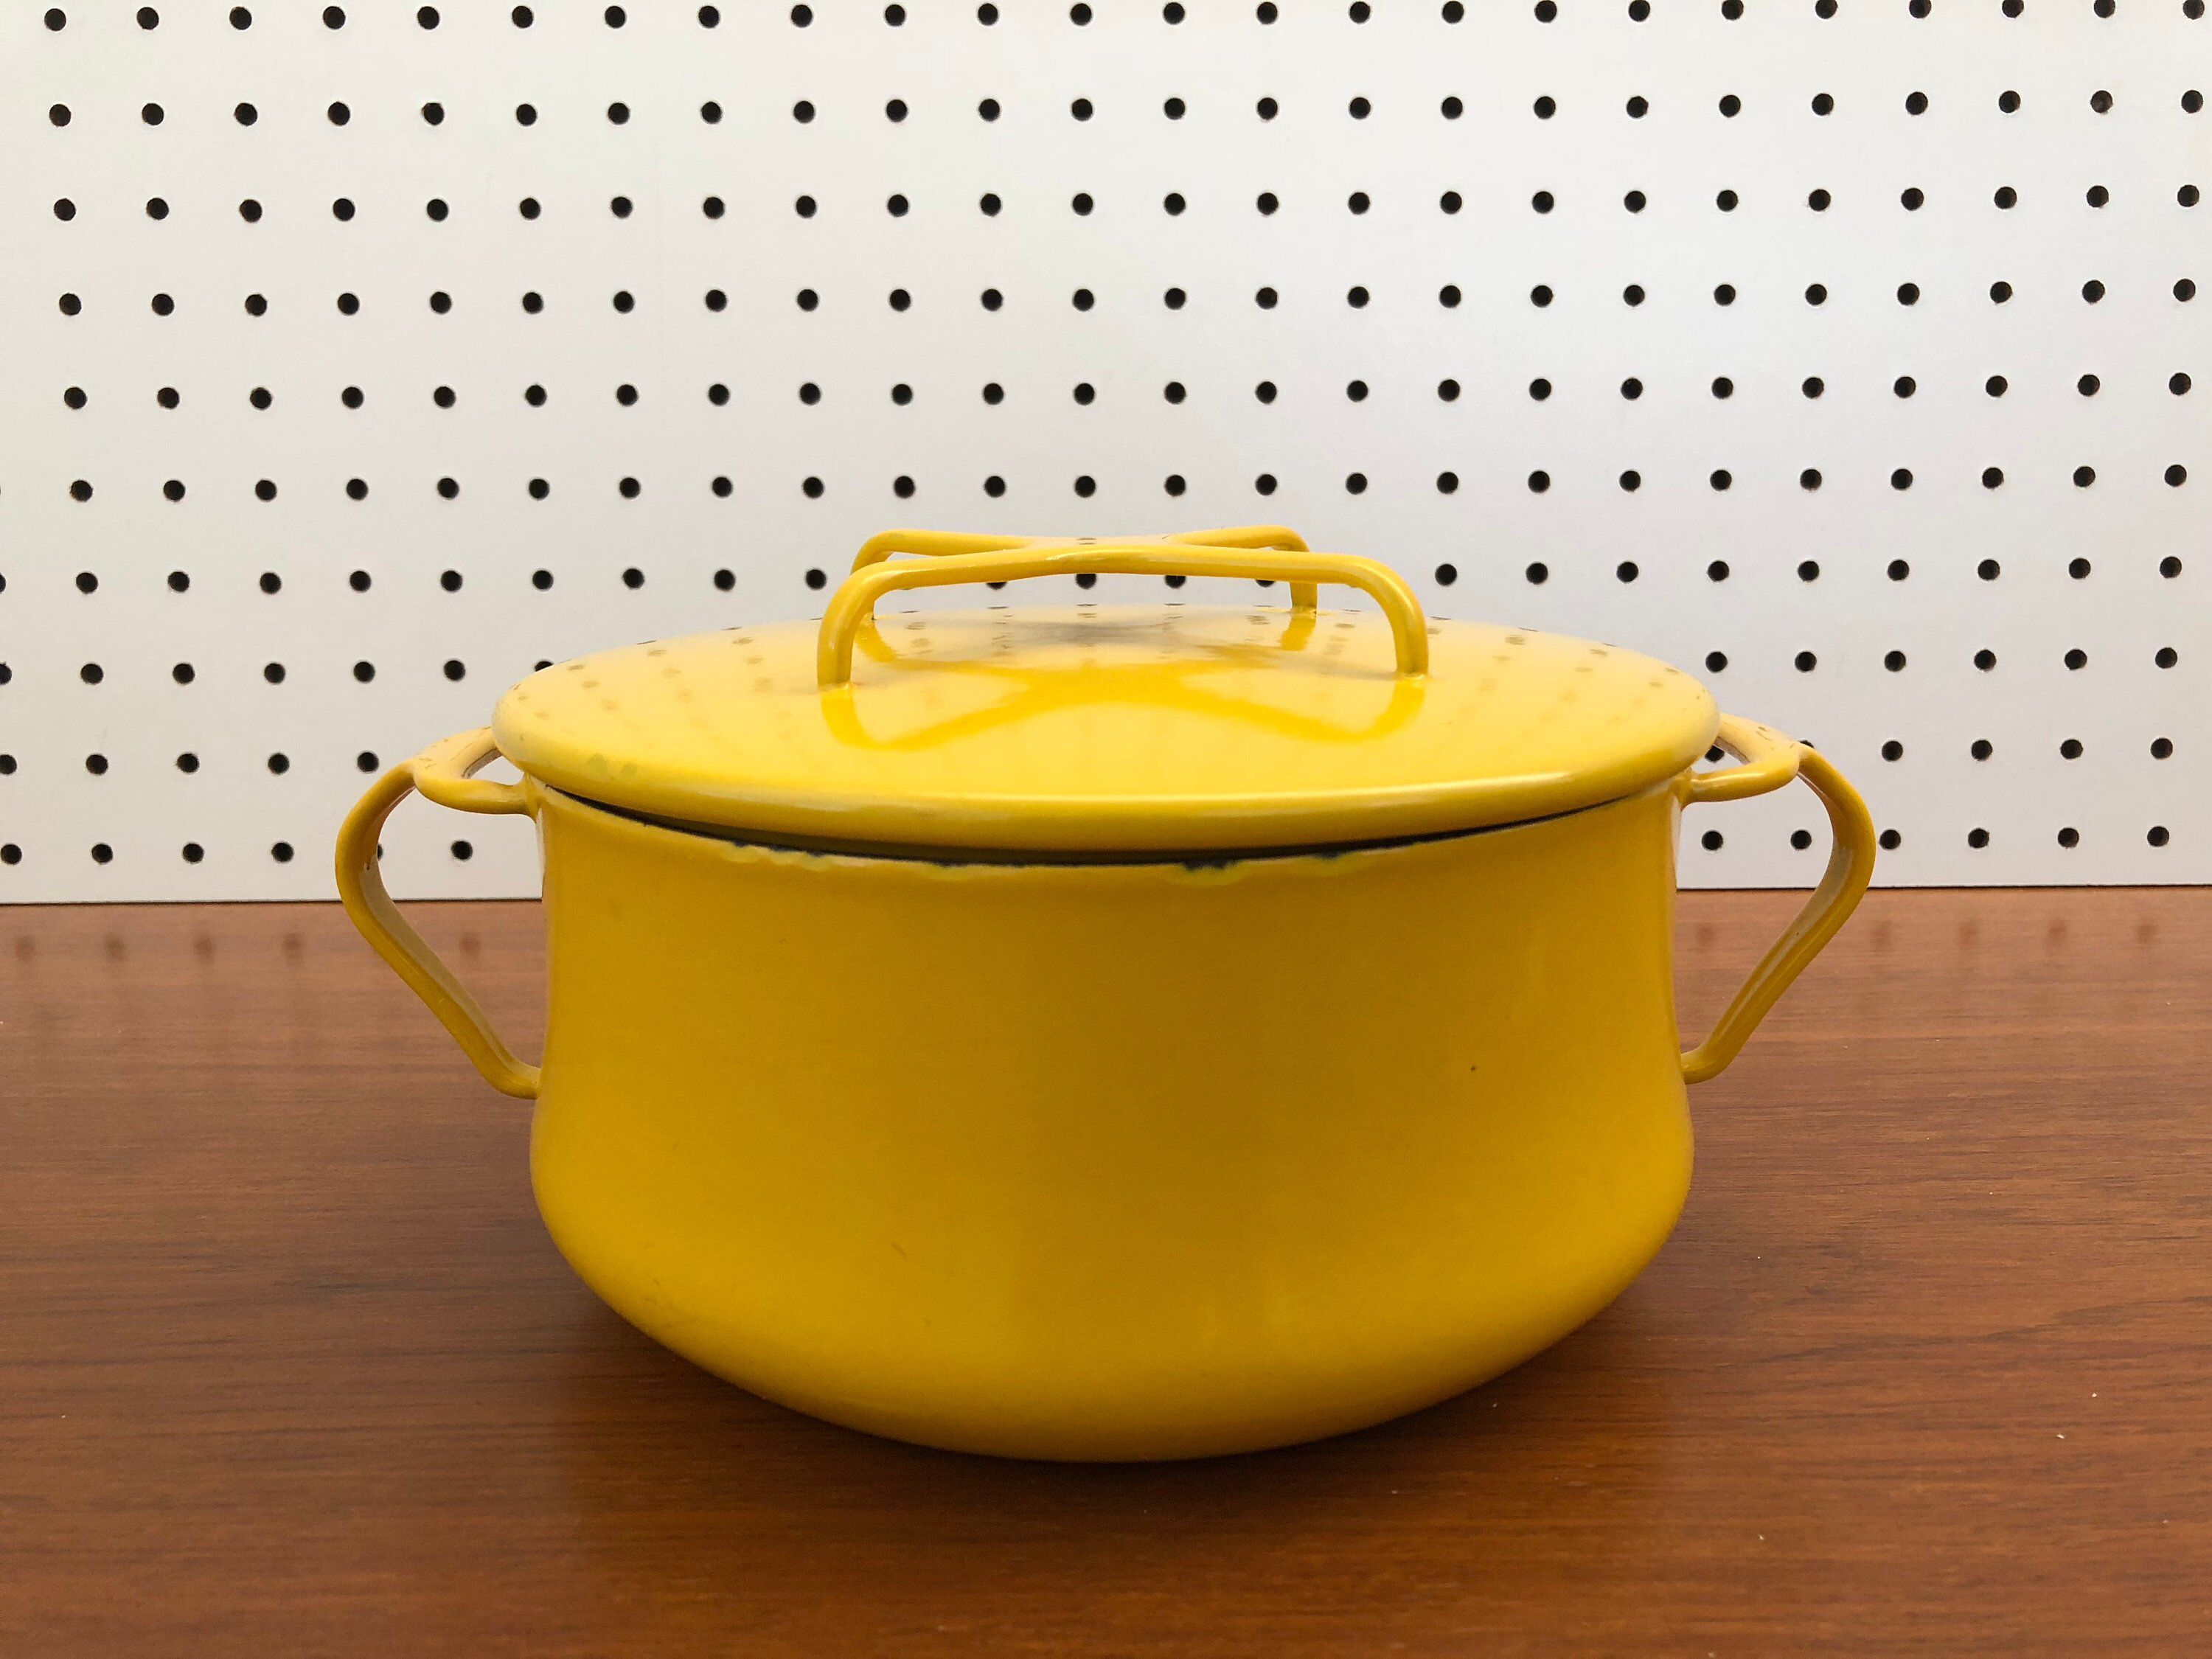 Excited To Share This Item From My Etsy Shop Dansk Kobenstyle 3 Quart Yellow Enamel Pot Dutch Oven Jens Quistgaa Oven Design Yellow Enamel Jens Quistgaard